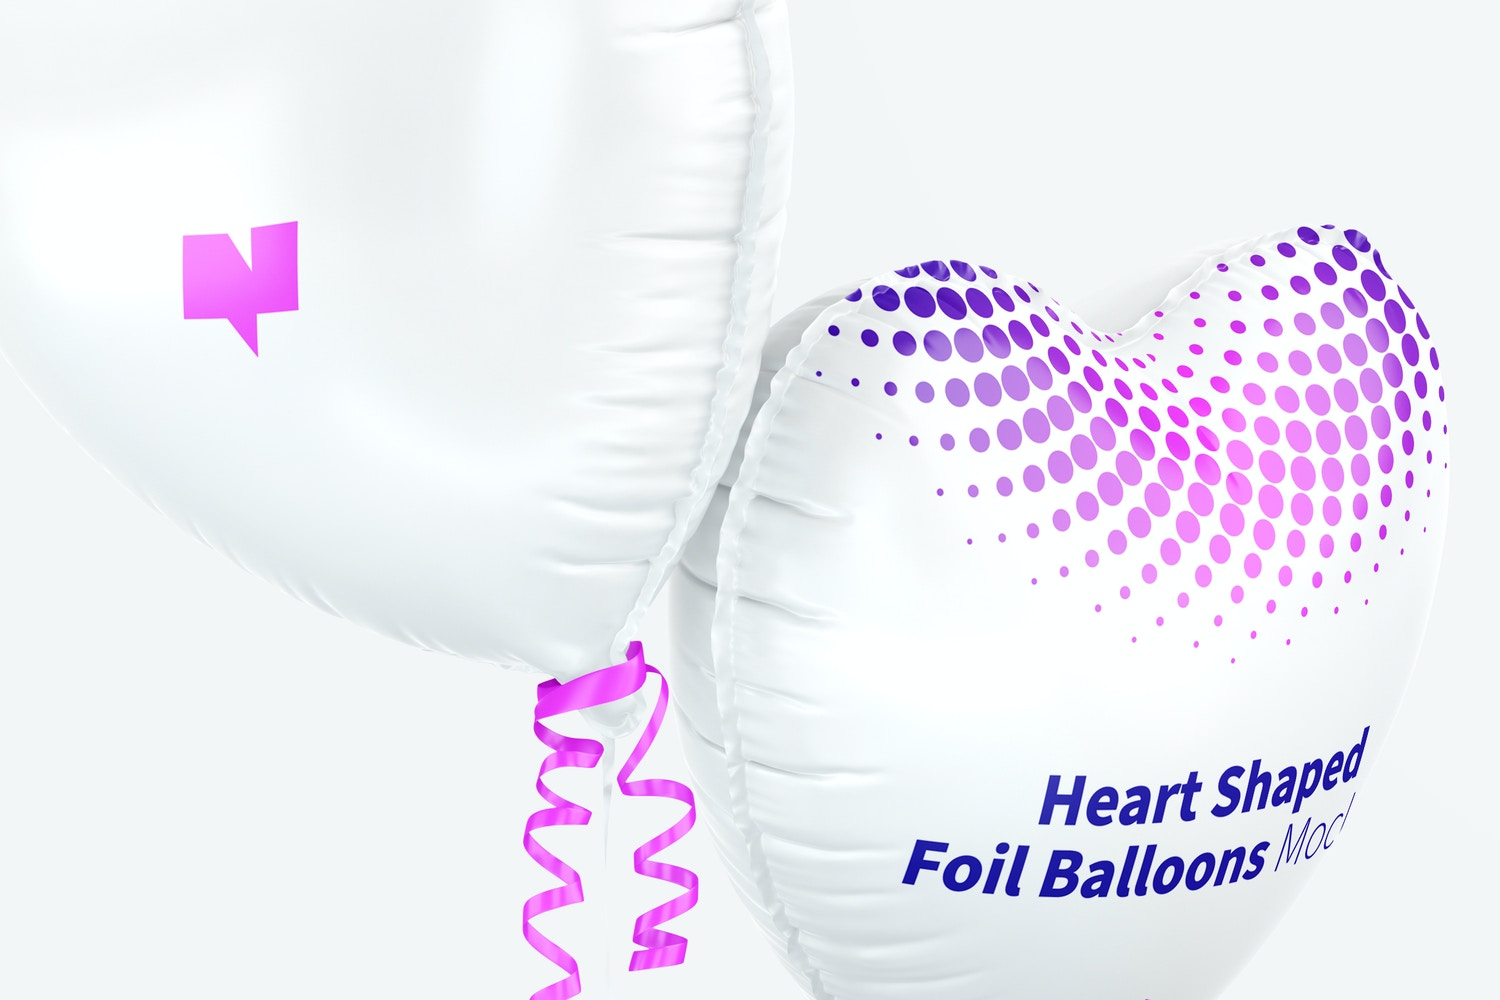 Thanks to the 5k hight resolution you can see the folds on the edge of the balloons.